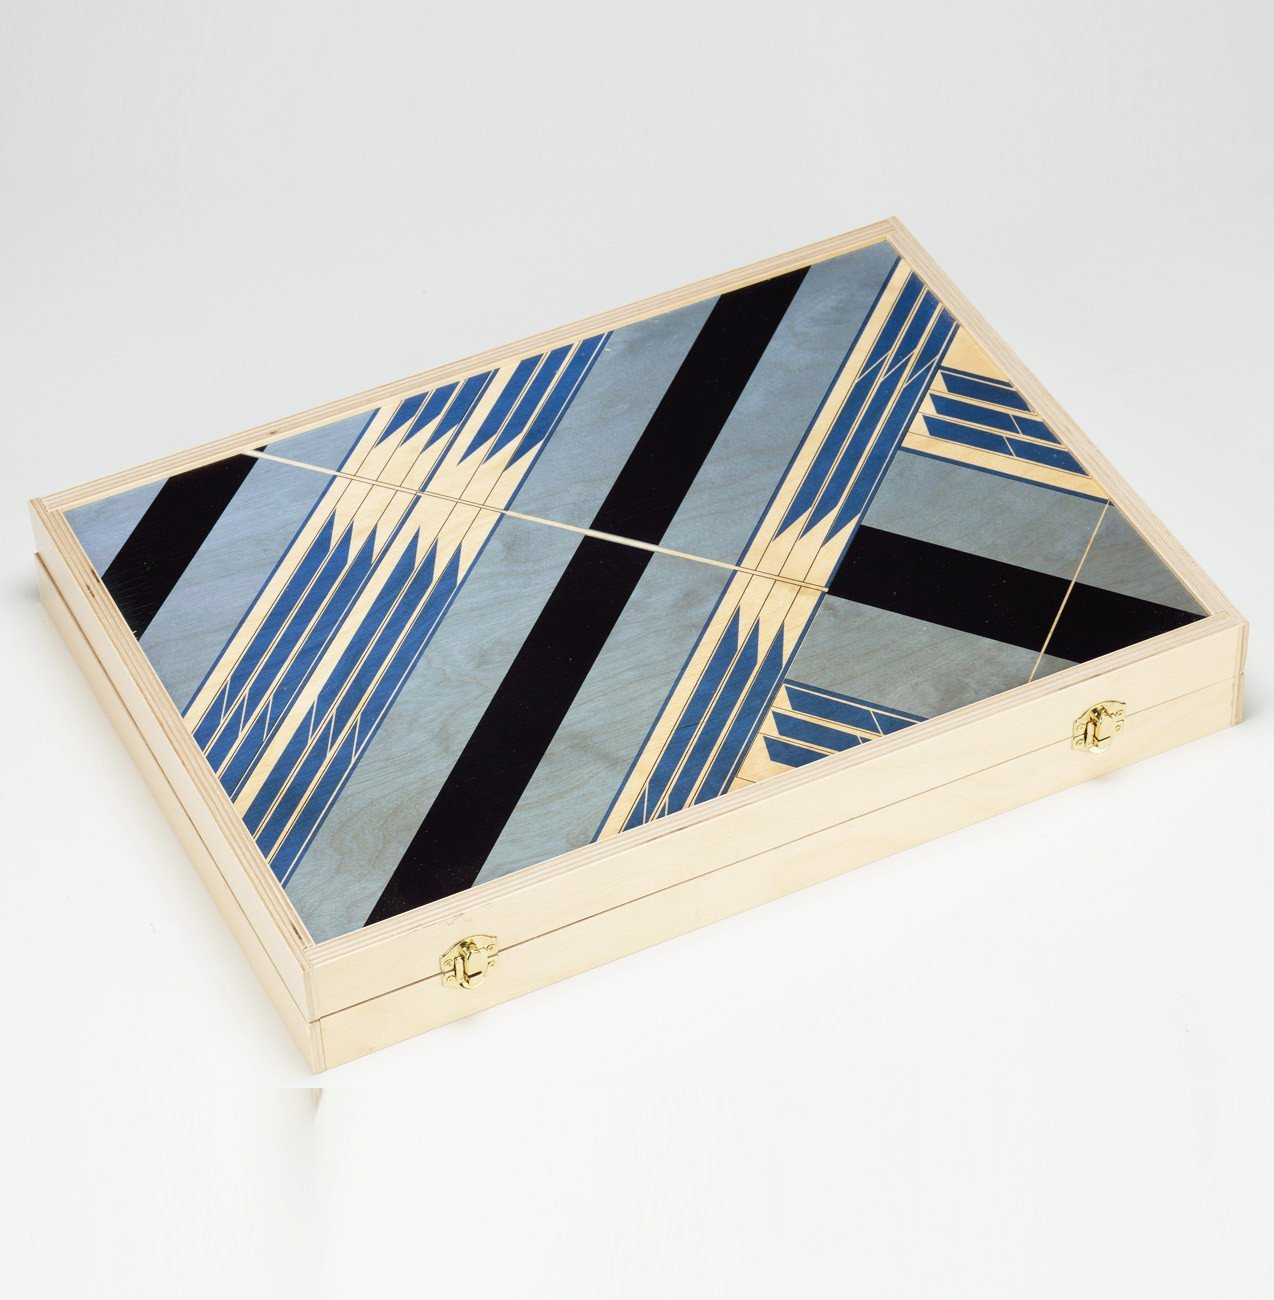 Wolfum sybil tabletop backgammon cover